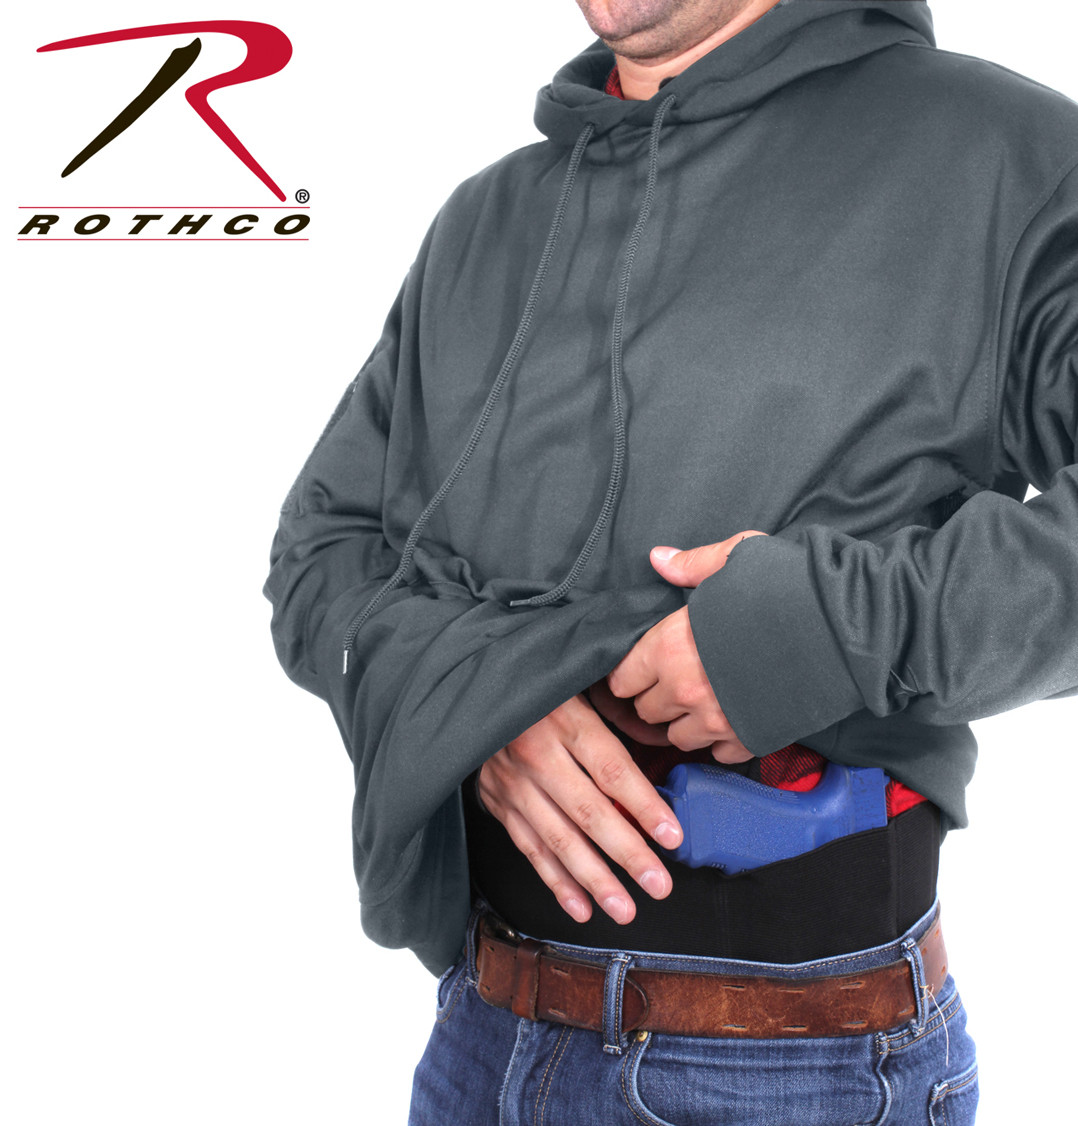 7d025200 Rothco Concealed Carry Hoodie Pullover - Grey - Fatigues Army Navy &  Surplus Gear Co.